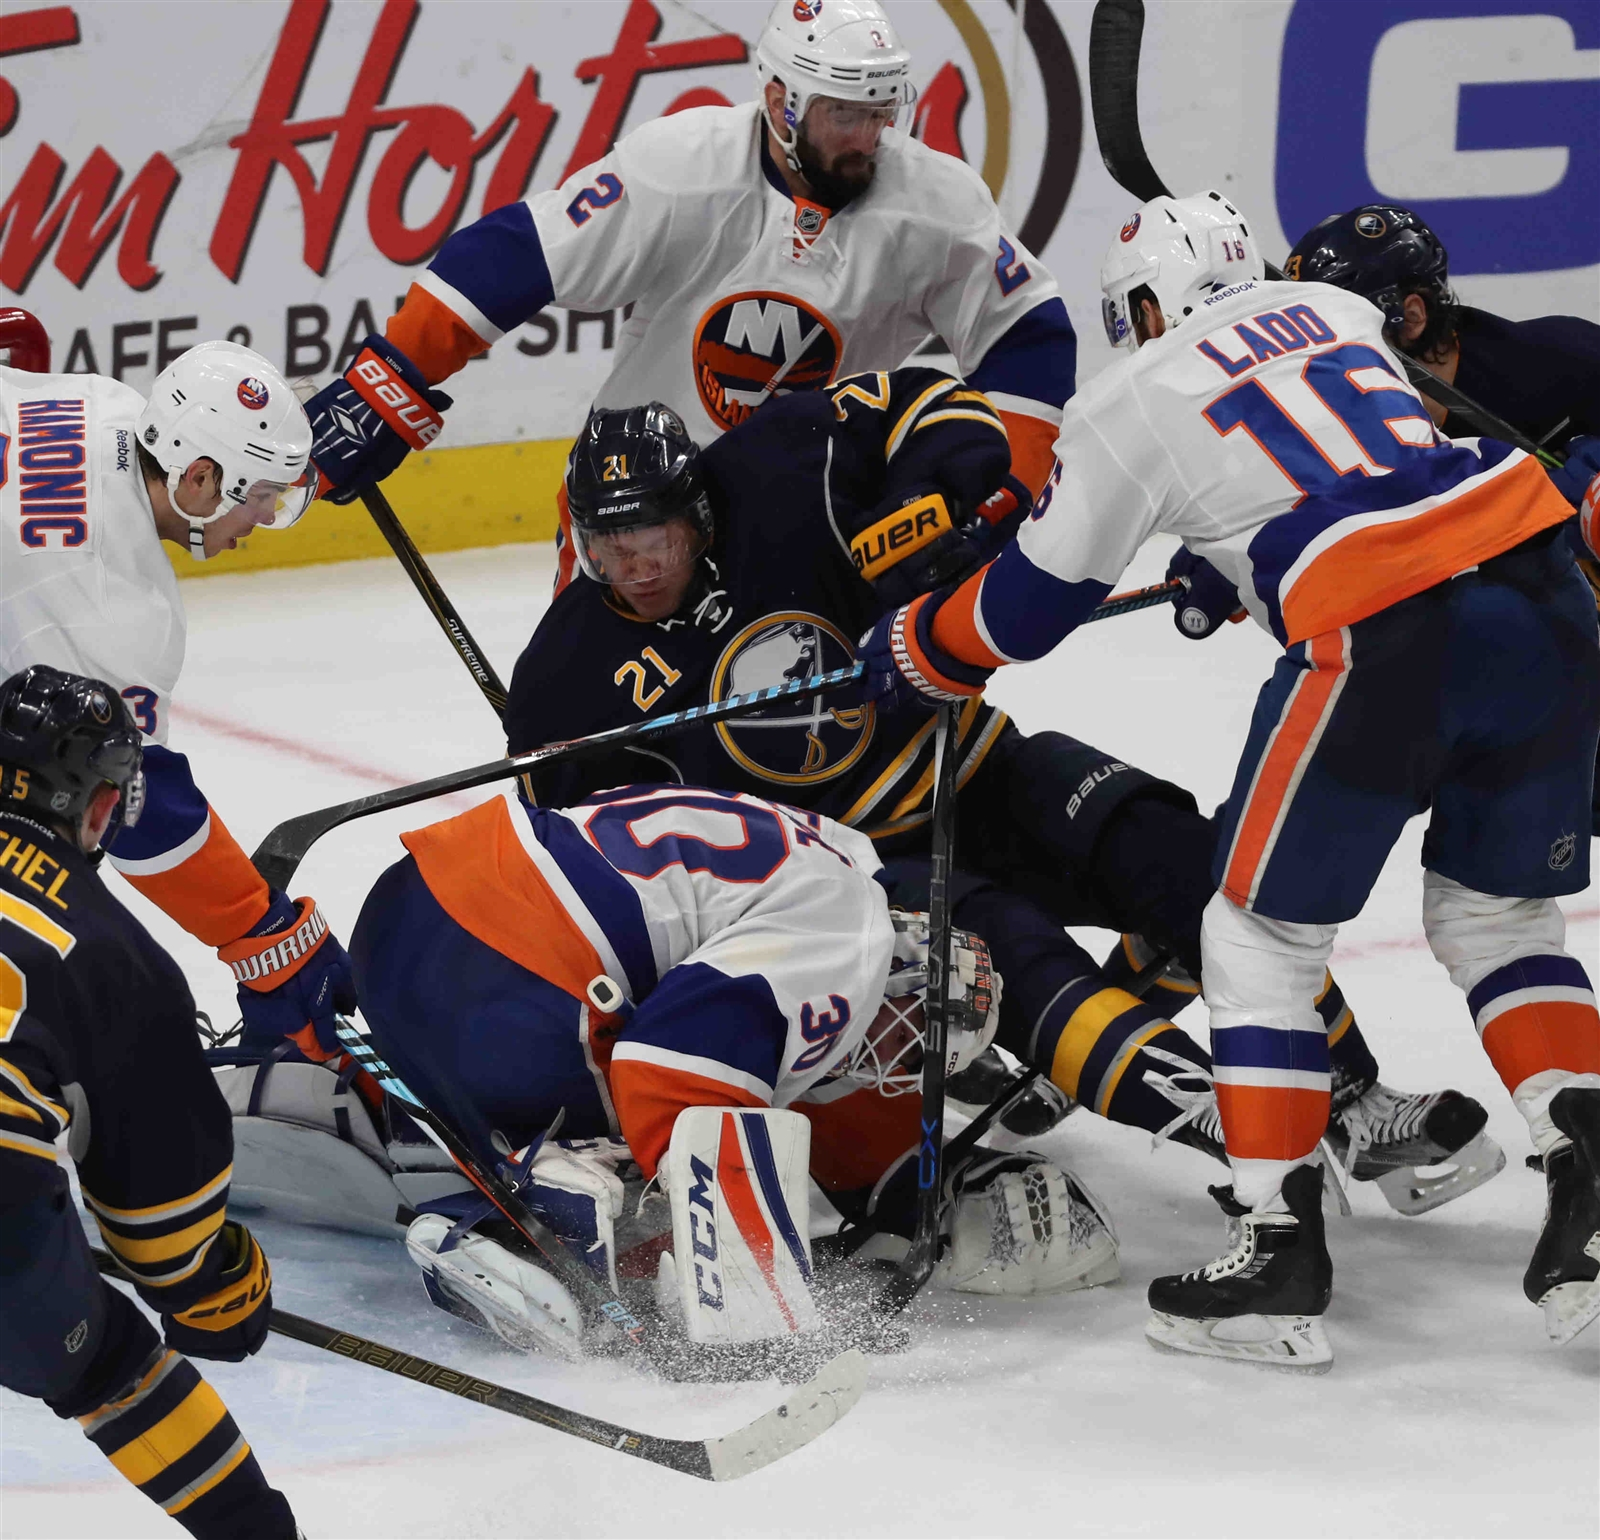 Buffalo Sabres right wing Kyle Okposo (21) battles New York Islanders goalie Jean-Francois Berube (30) for the puck.